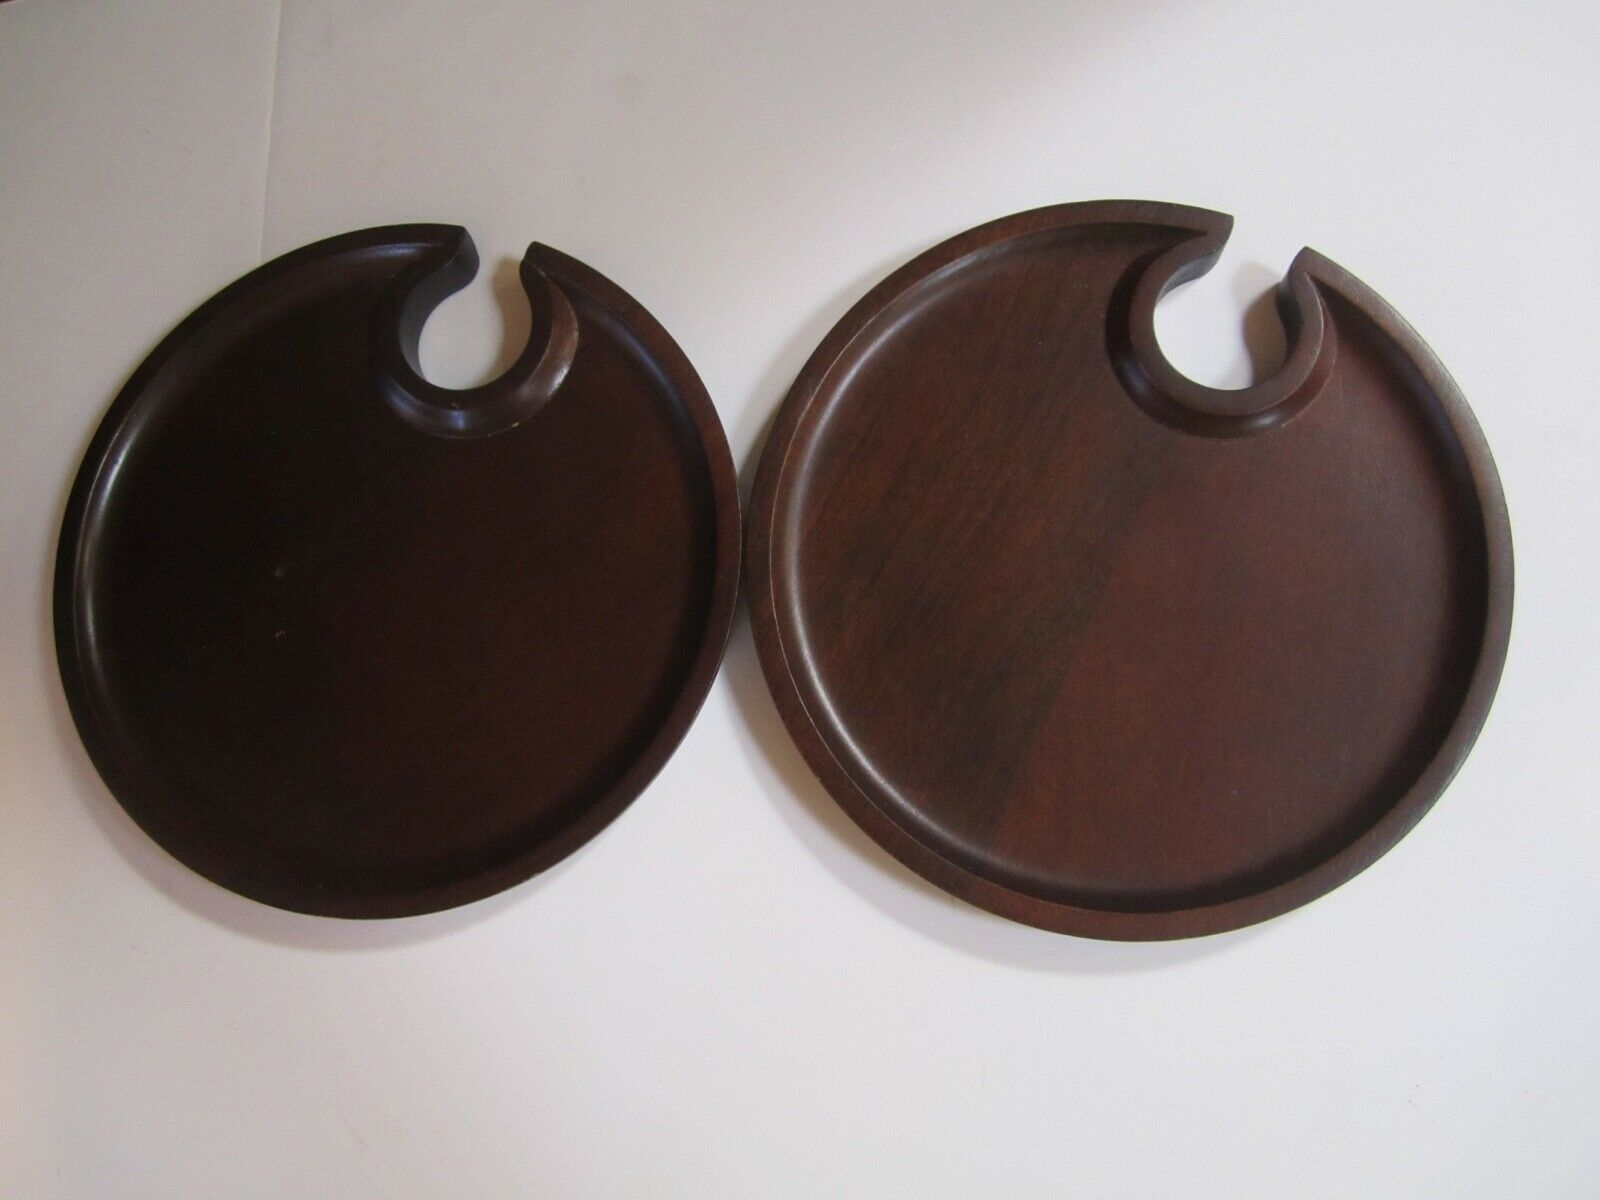 Pottery Barn Wood Mingling Plates Called Swood Notched Wine Cutout Set of 2 - $16.78